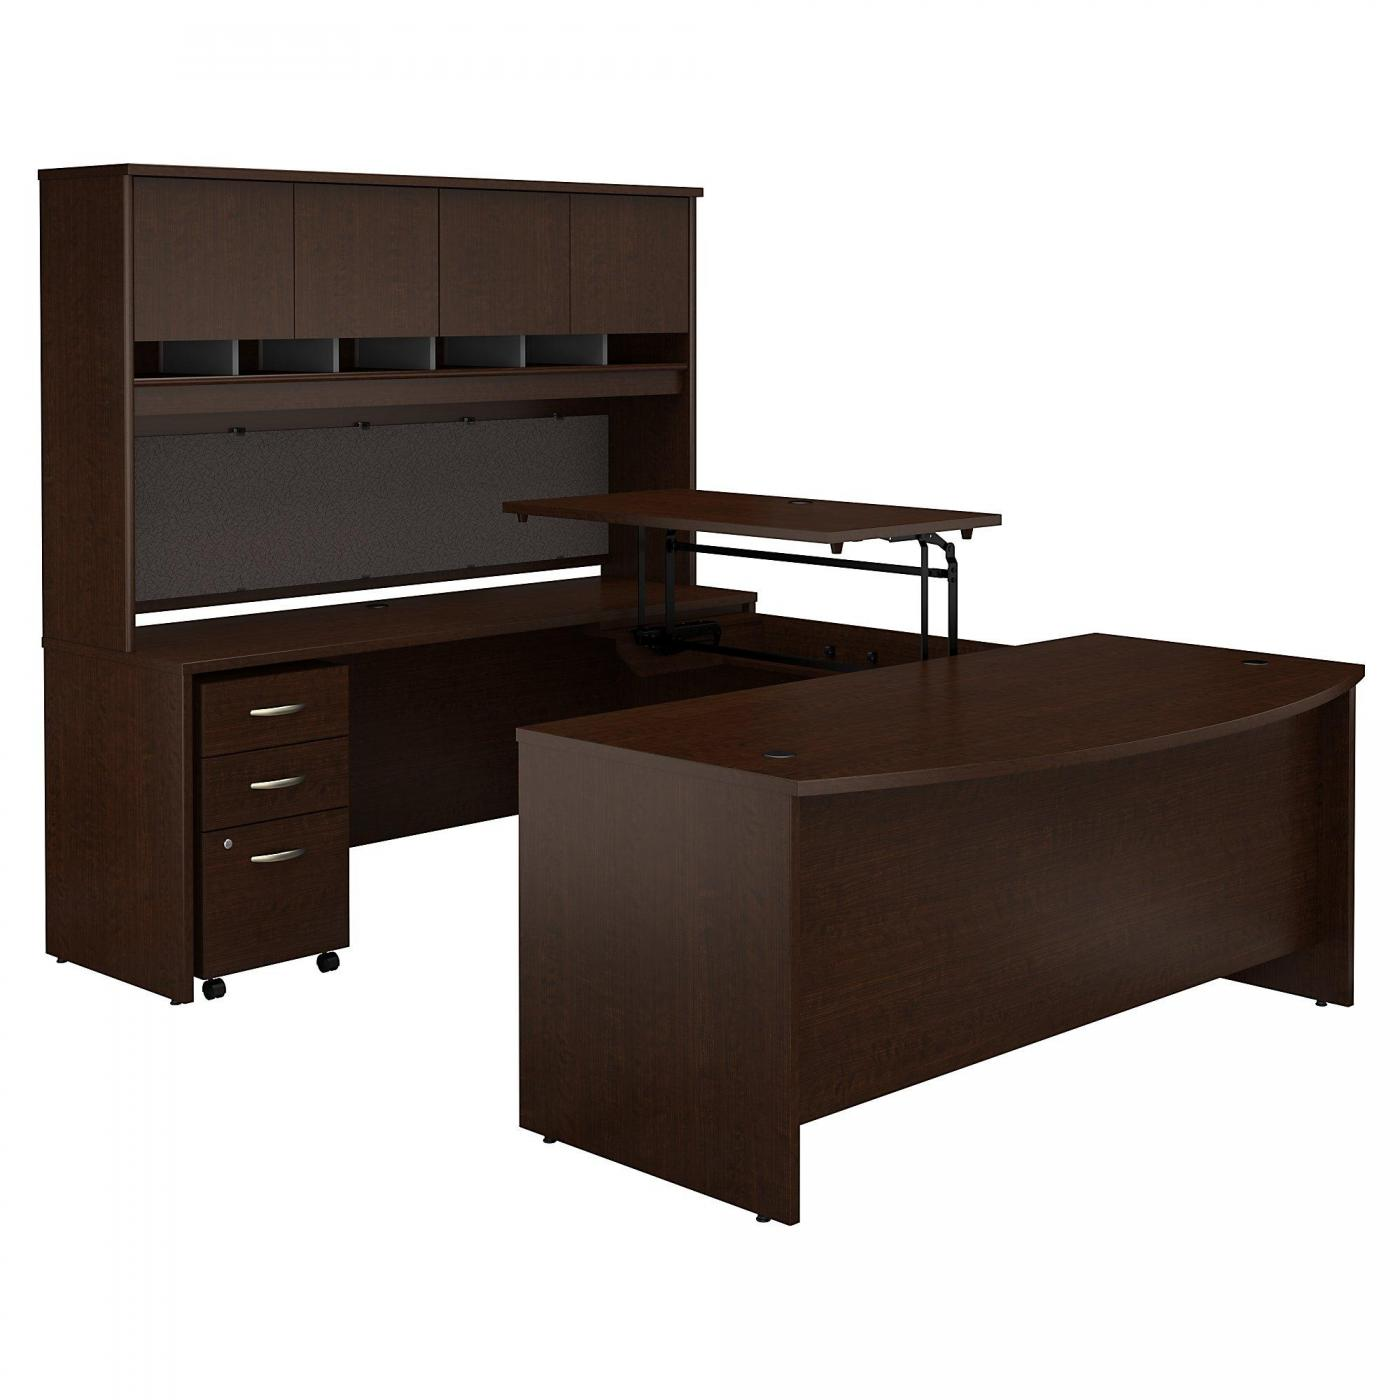 <font color=#c60><b>BUSH BUSINESS FURNITURE SERIES C 72W X 36D 3 POSITION SIT TO STAND BOW FRONT U SHAPED DESK WITH HUTCH AND MOBILE FILE CABINET. FREE SHIPPING. VIDEO:</font></b></font></b>